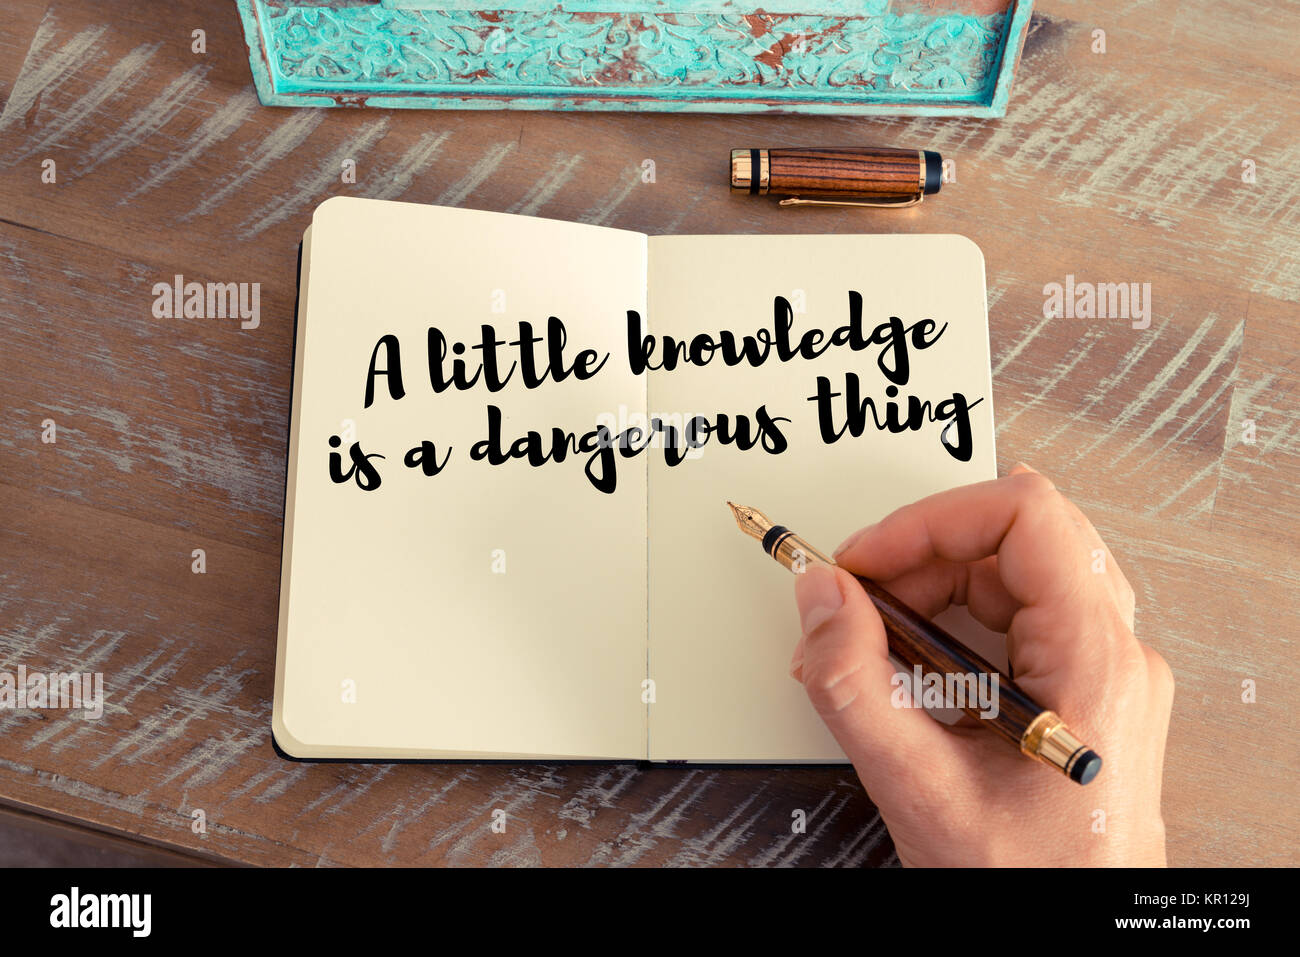 a little learning is a dangerous thing stock photos a little  handwritten quote as inspirational concept image stock image